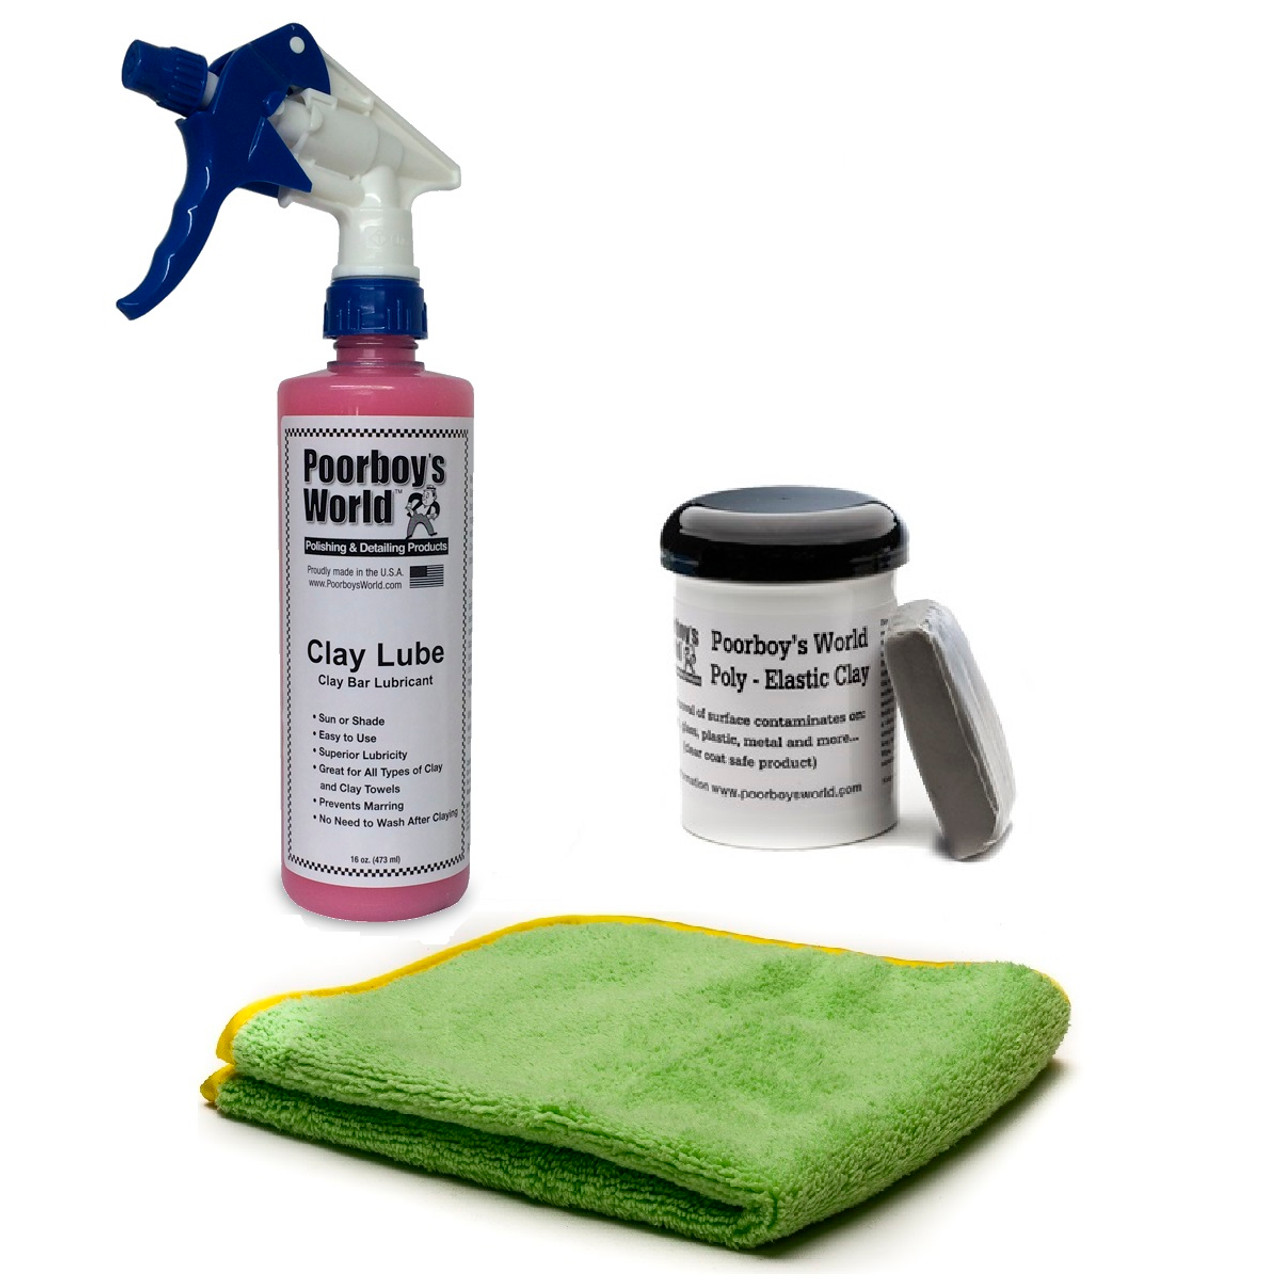 Single Clay Bar Kit - 4oz Clay Bar, 16oz Clay Lube, DMT Microfiber Towel